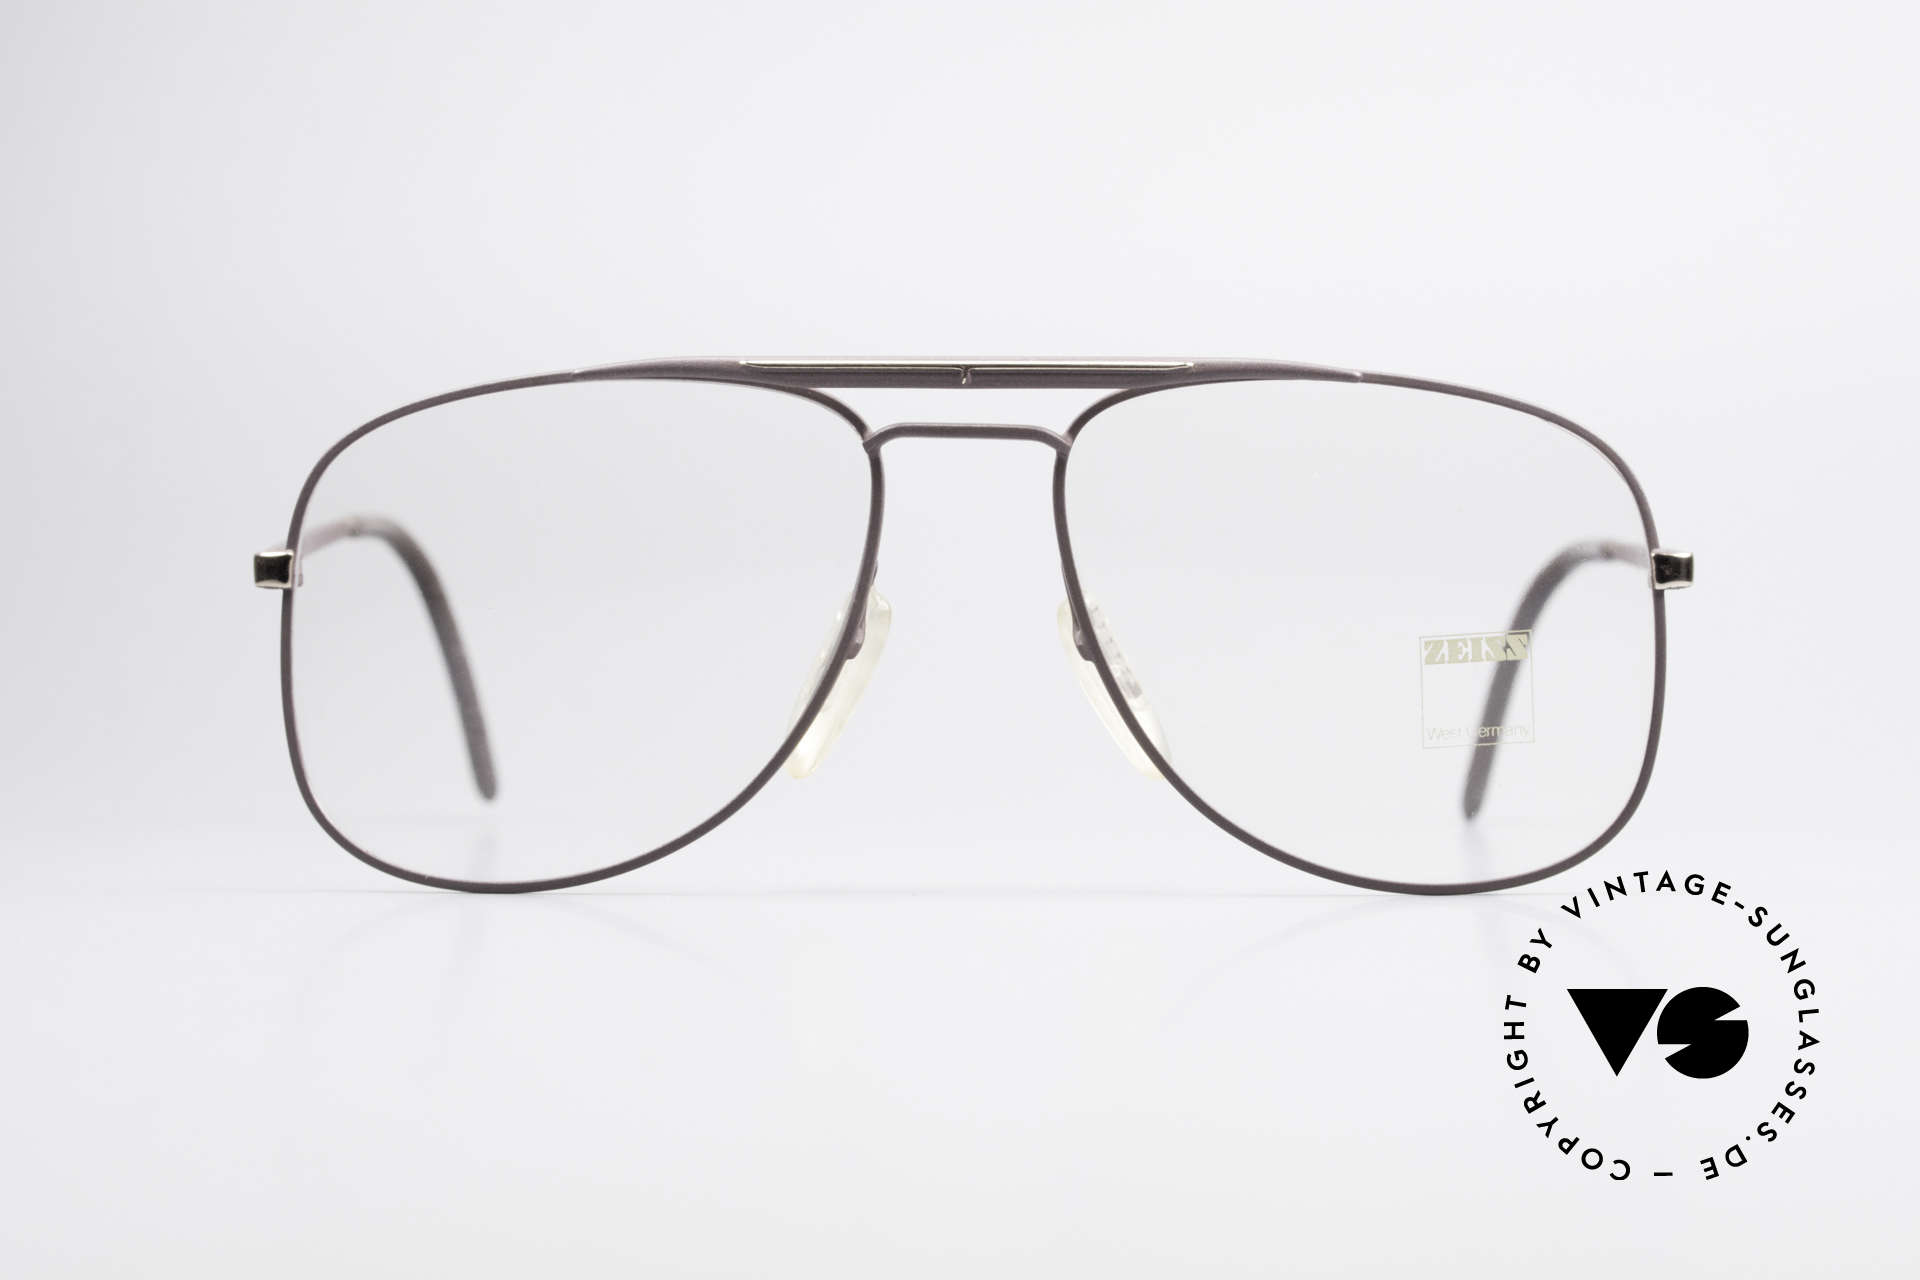 Zeiss 5886 Old 80's Eyeglass-Frame Men, outstanding 'MADE IN W. GERMANY' craftsmanship, Made for Men